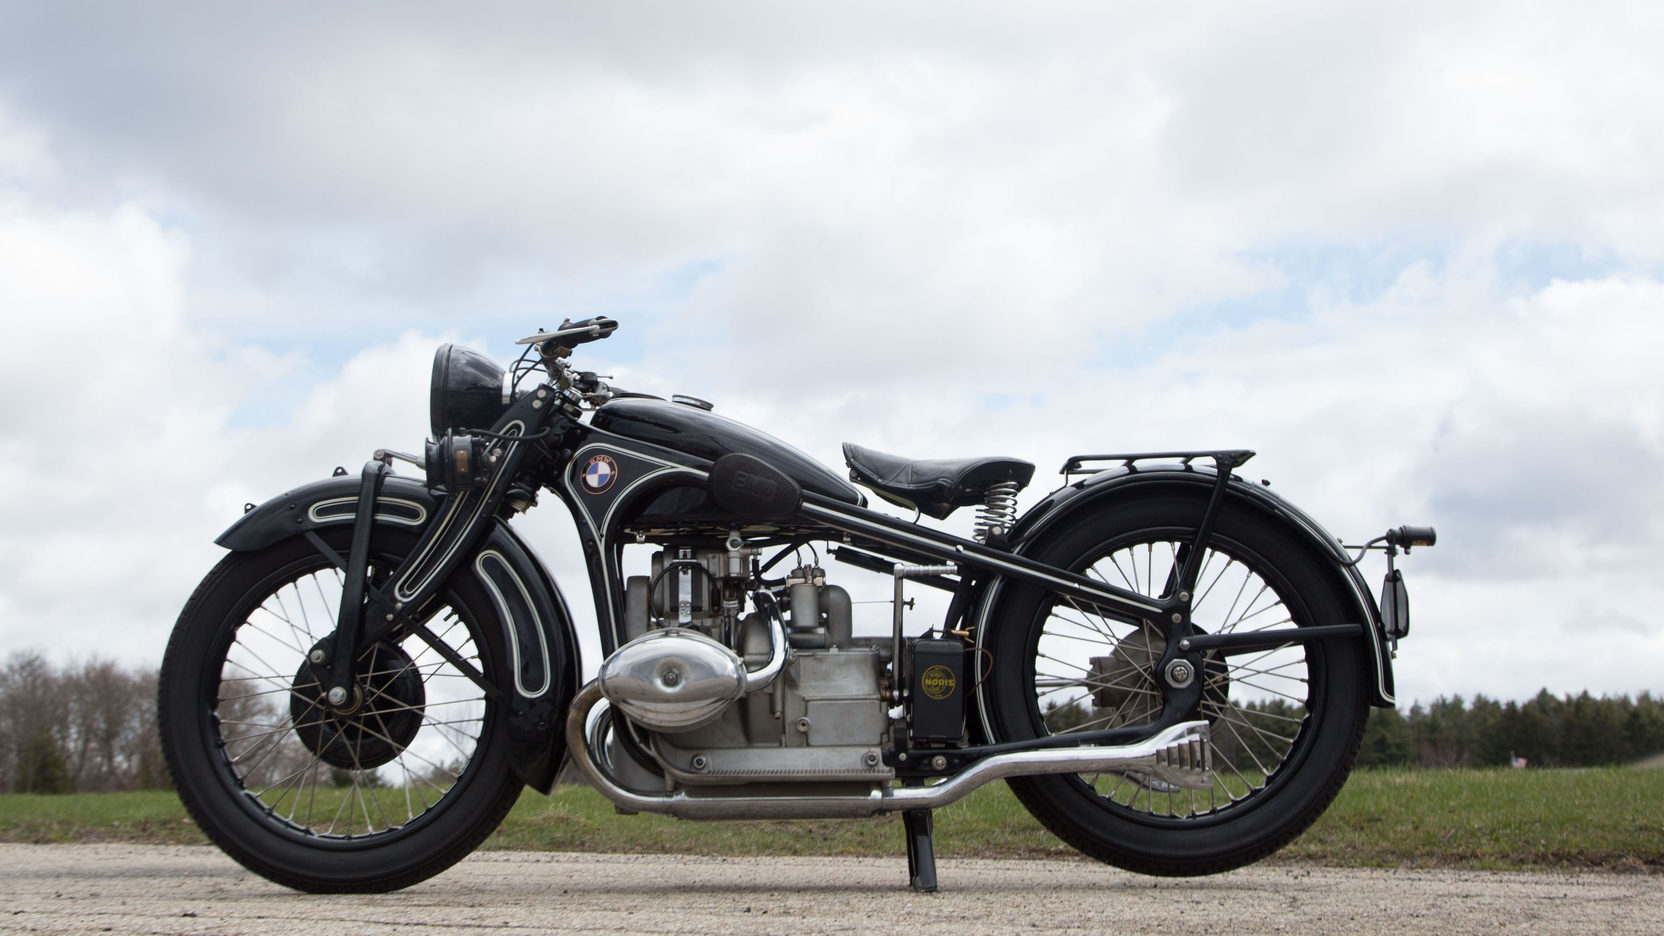 The BMW R16 is a modern looking motorcycle despite the fact that it was designed and made between 1929-1934.